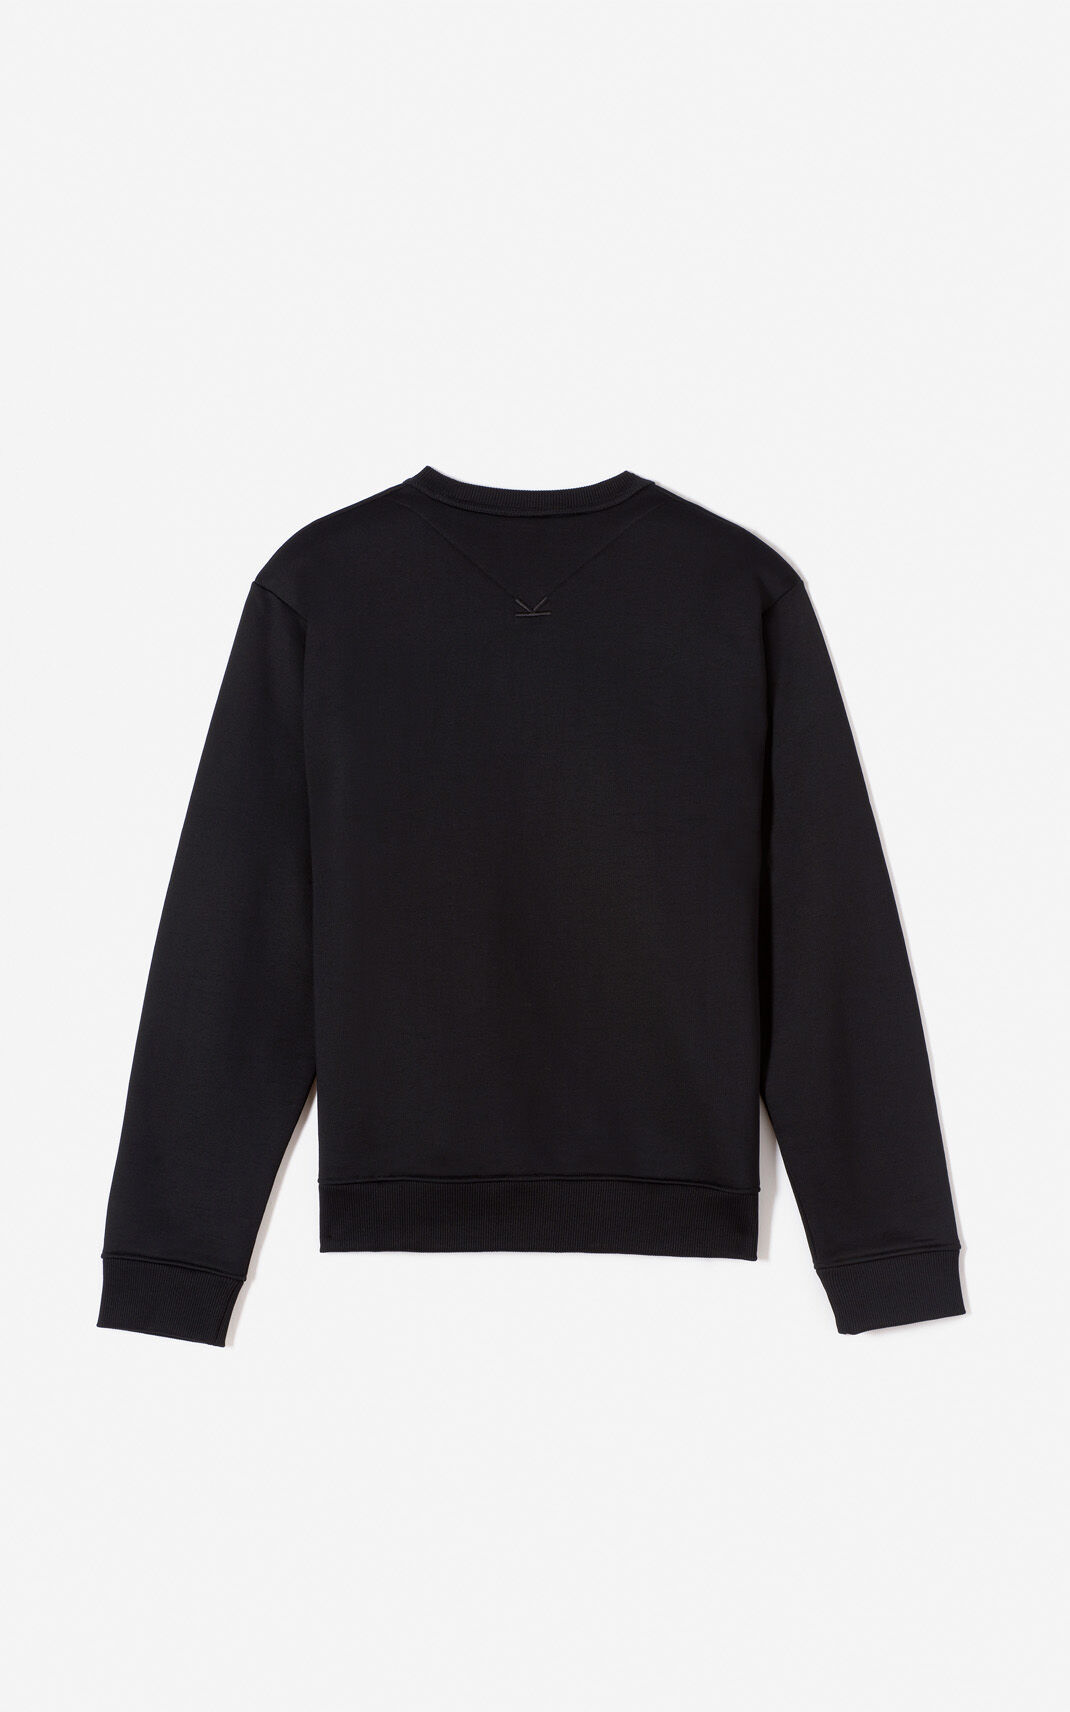 BLACK 'Escape' sweatshirt for men KENZO